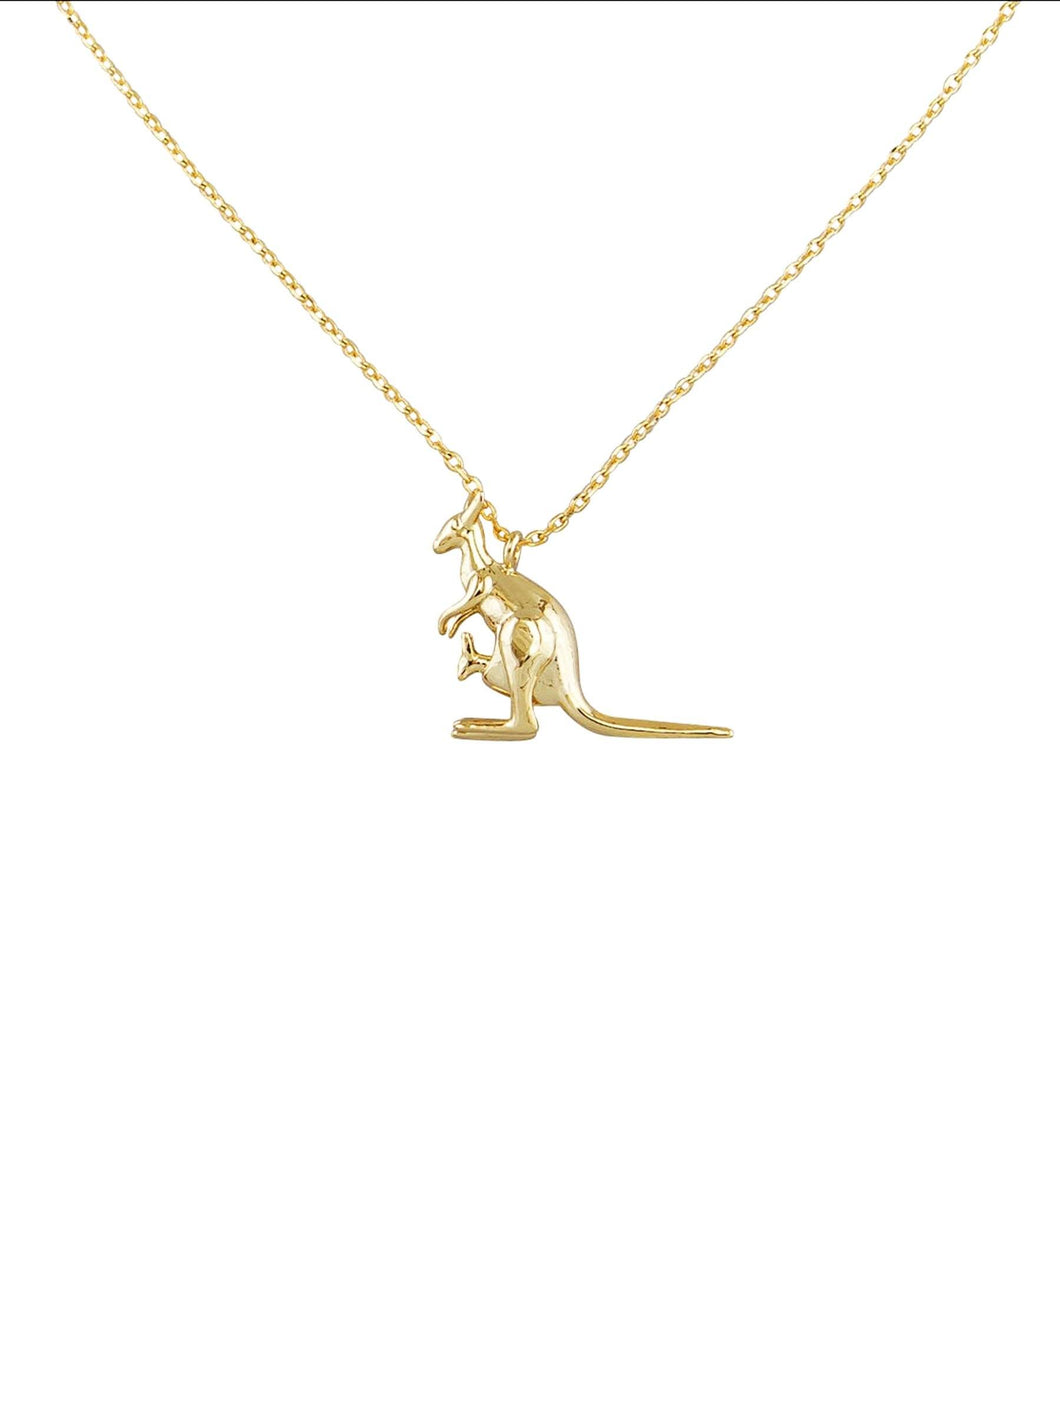 Tiger Tree Gold Skippy Necklace - Global Free Style